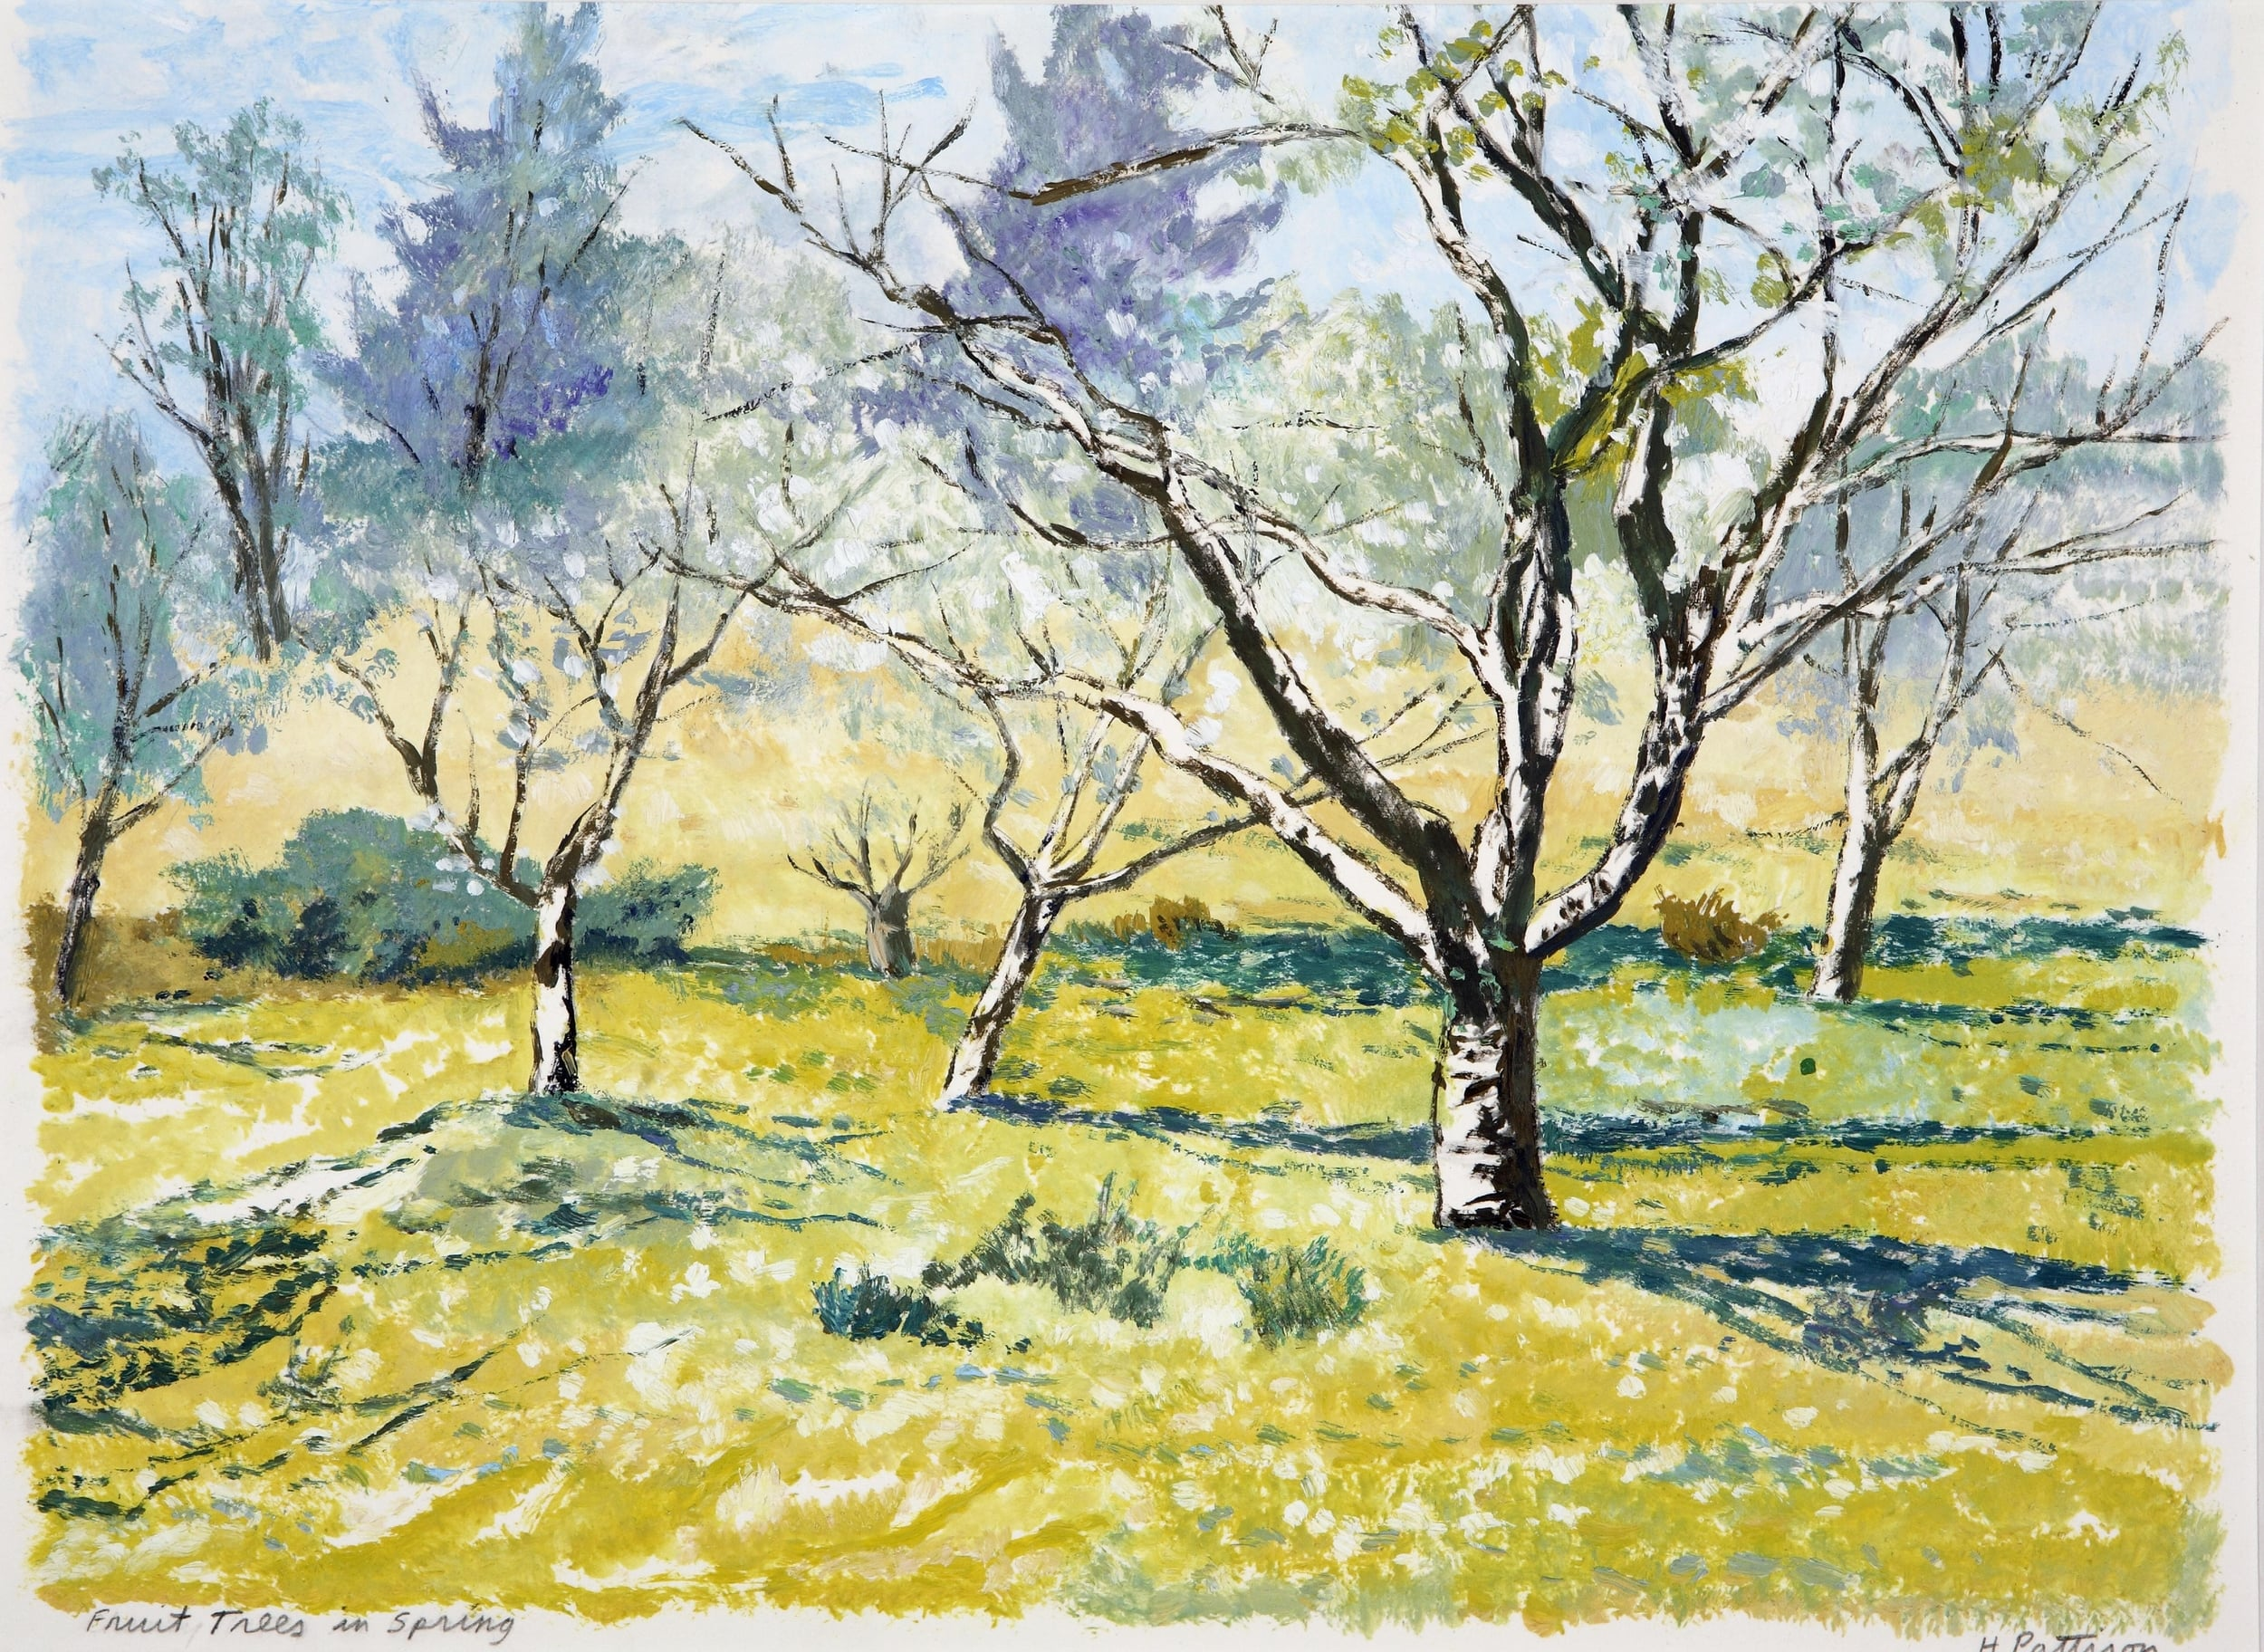 Apple Orchard in Spring, oil on paper, 11 x 14.5 inches